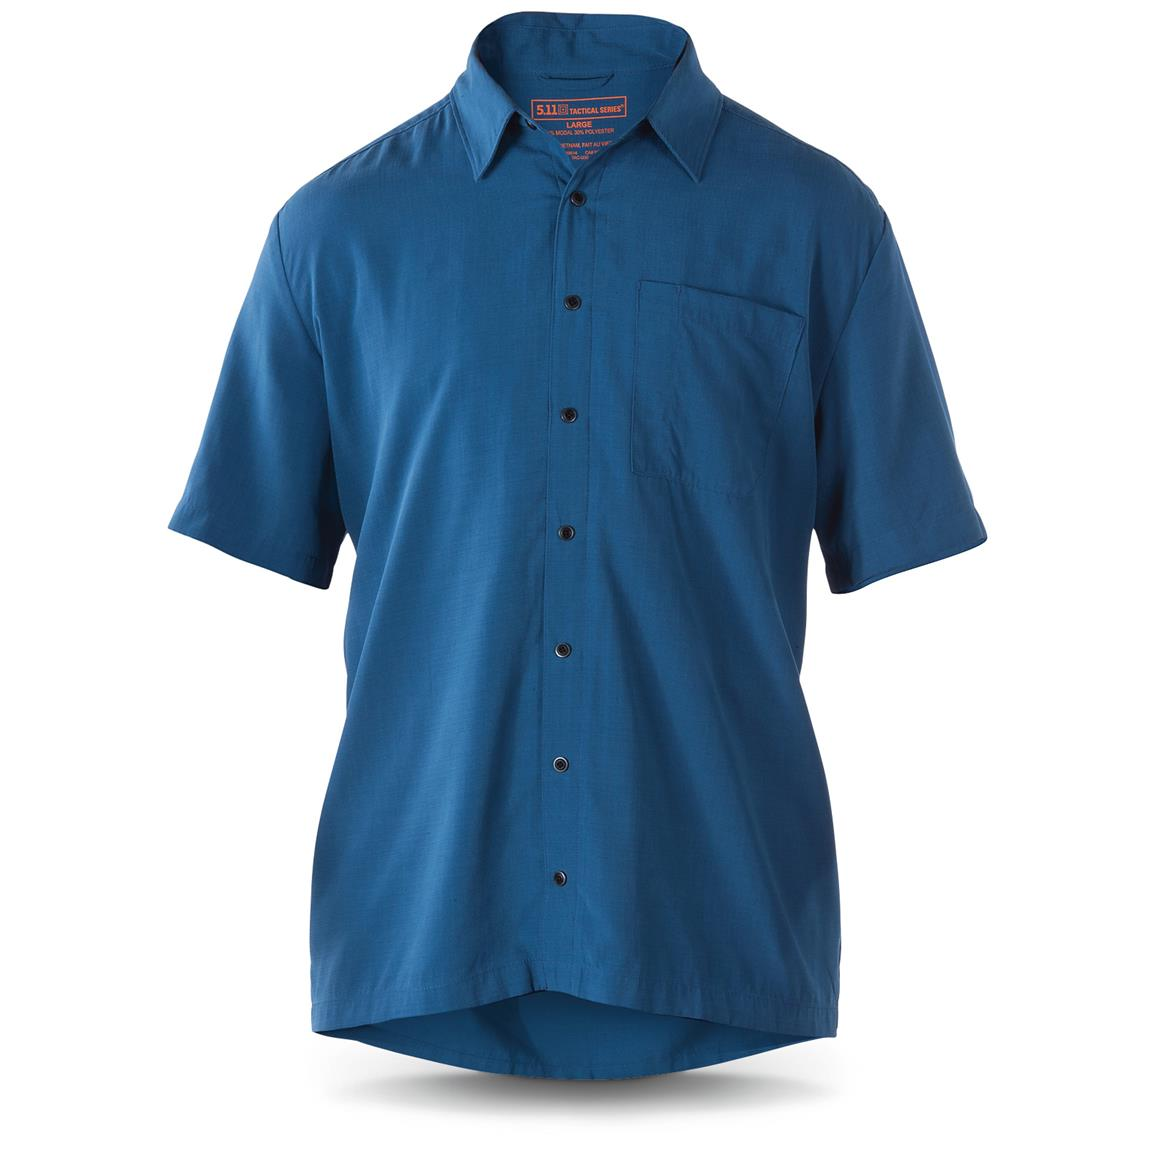 5.11 Select Covert CCW Shirt, Valiant